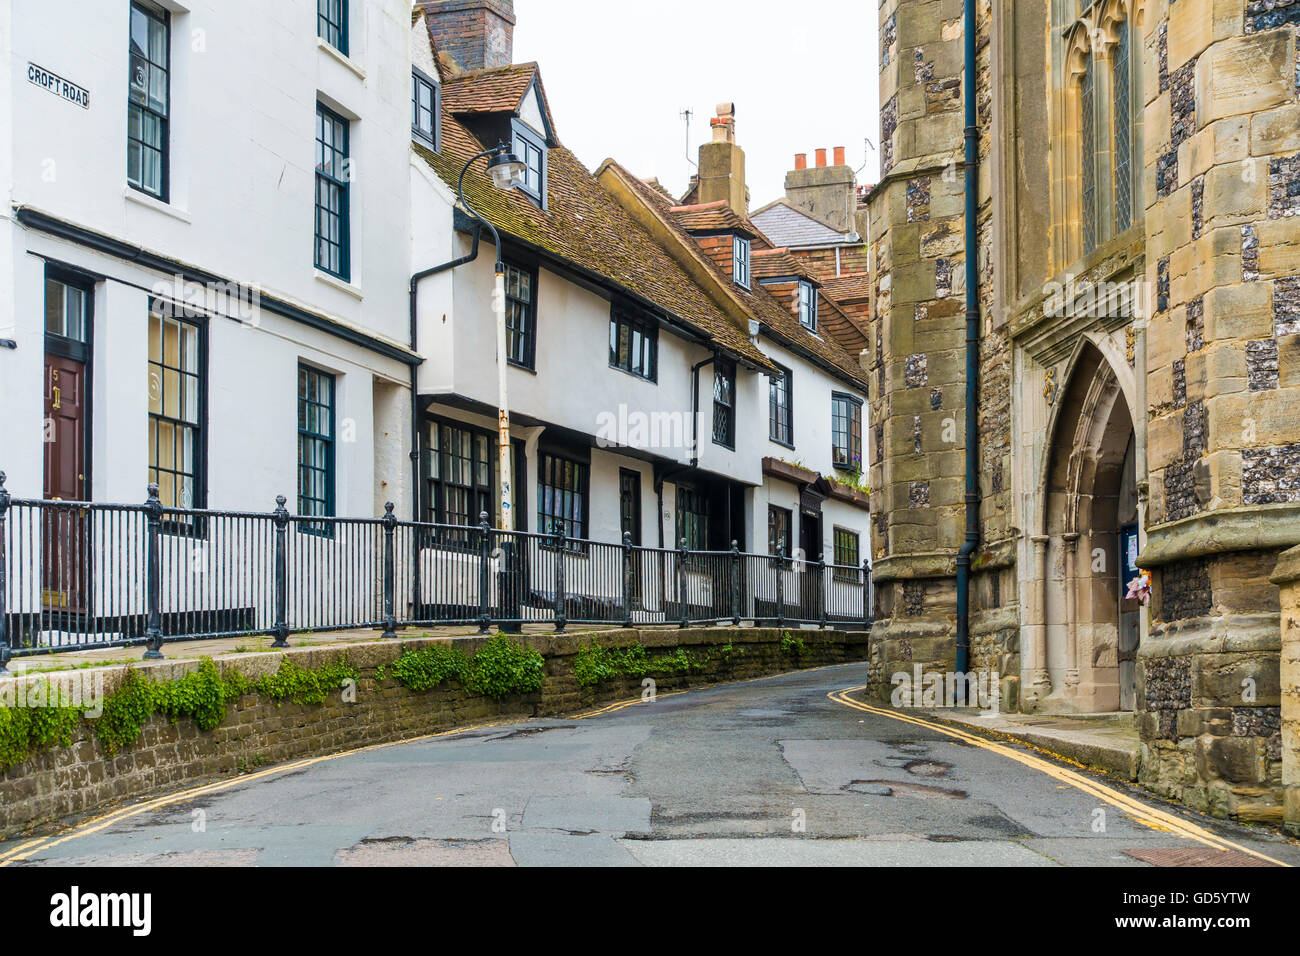 Croft Road Hastings Old Town East Sussex England - Stock Image